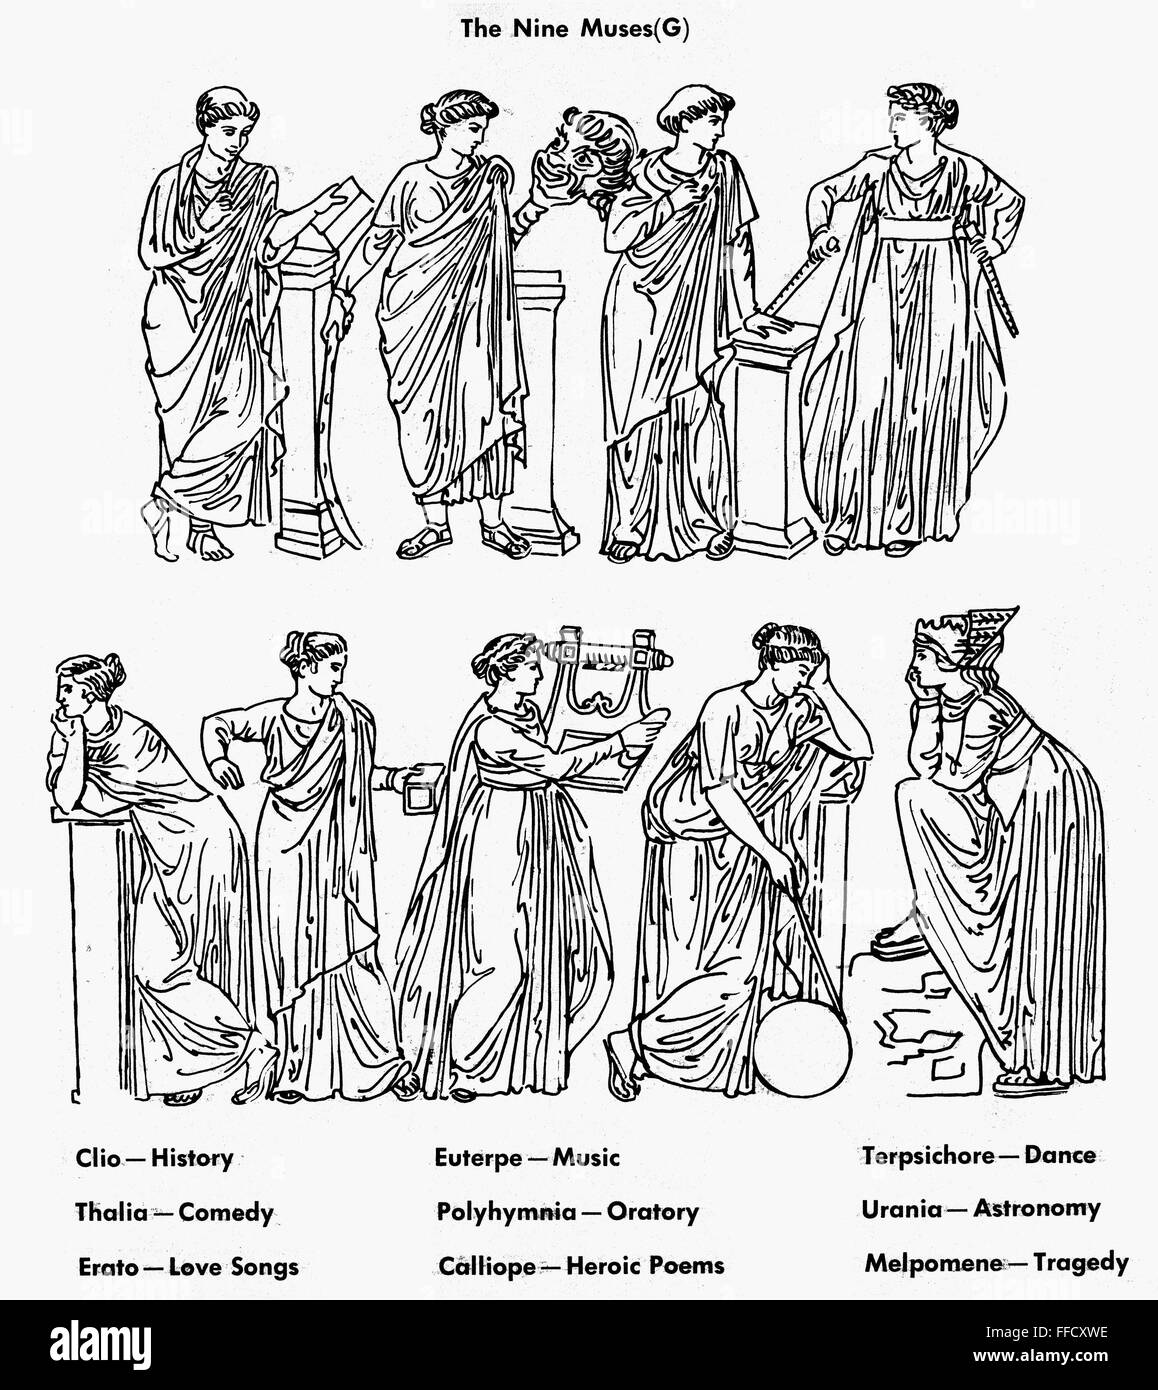 nine muses nthe nine muses of greek mythology top row